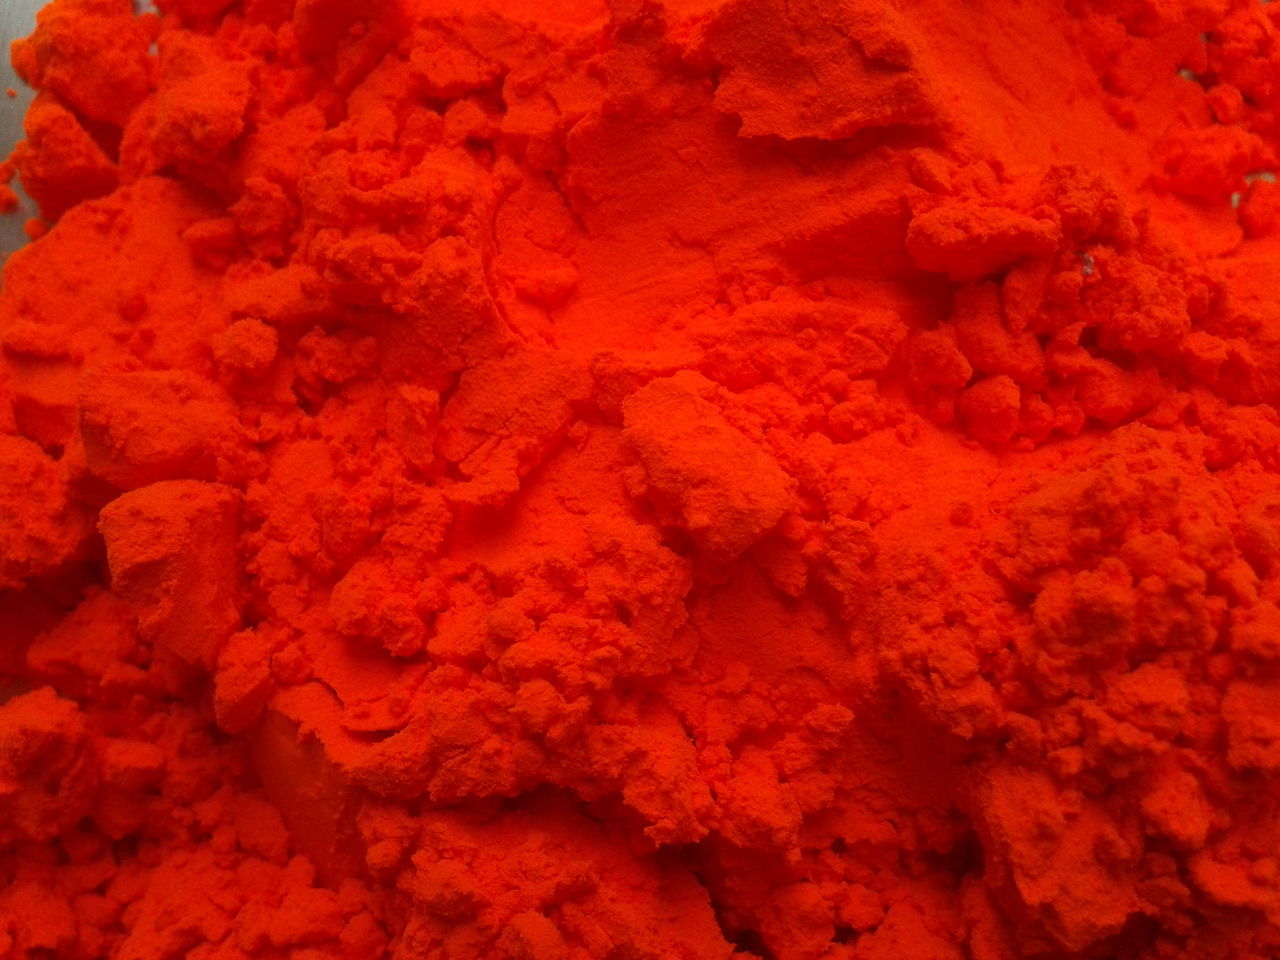 Dry Colours Powder Orange Color Red Holi Colors Festival Holi Festival Of Colors Festive Rang Colors Colorful Gulaal